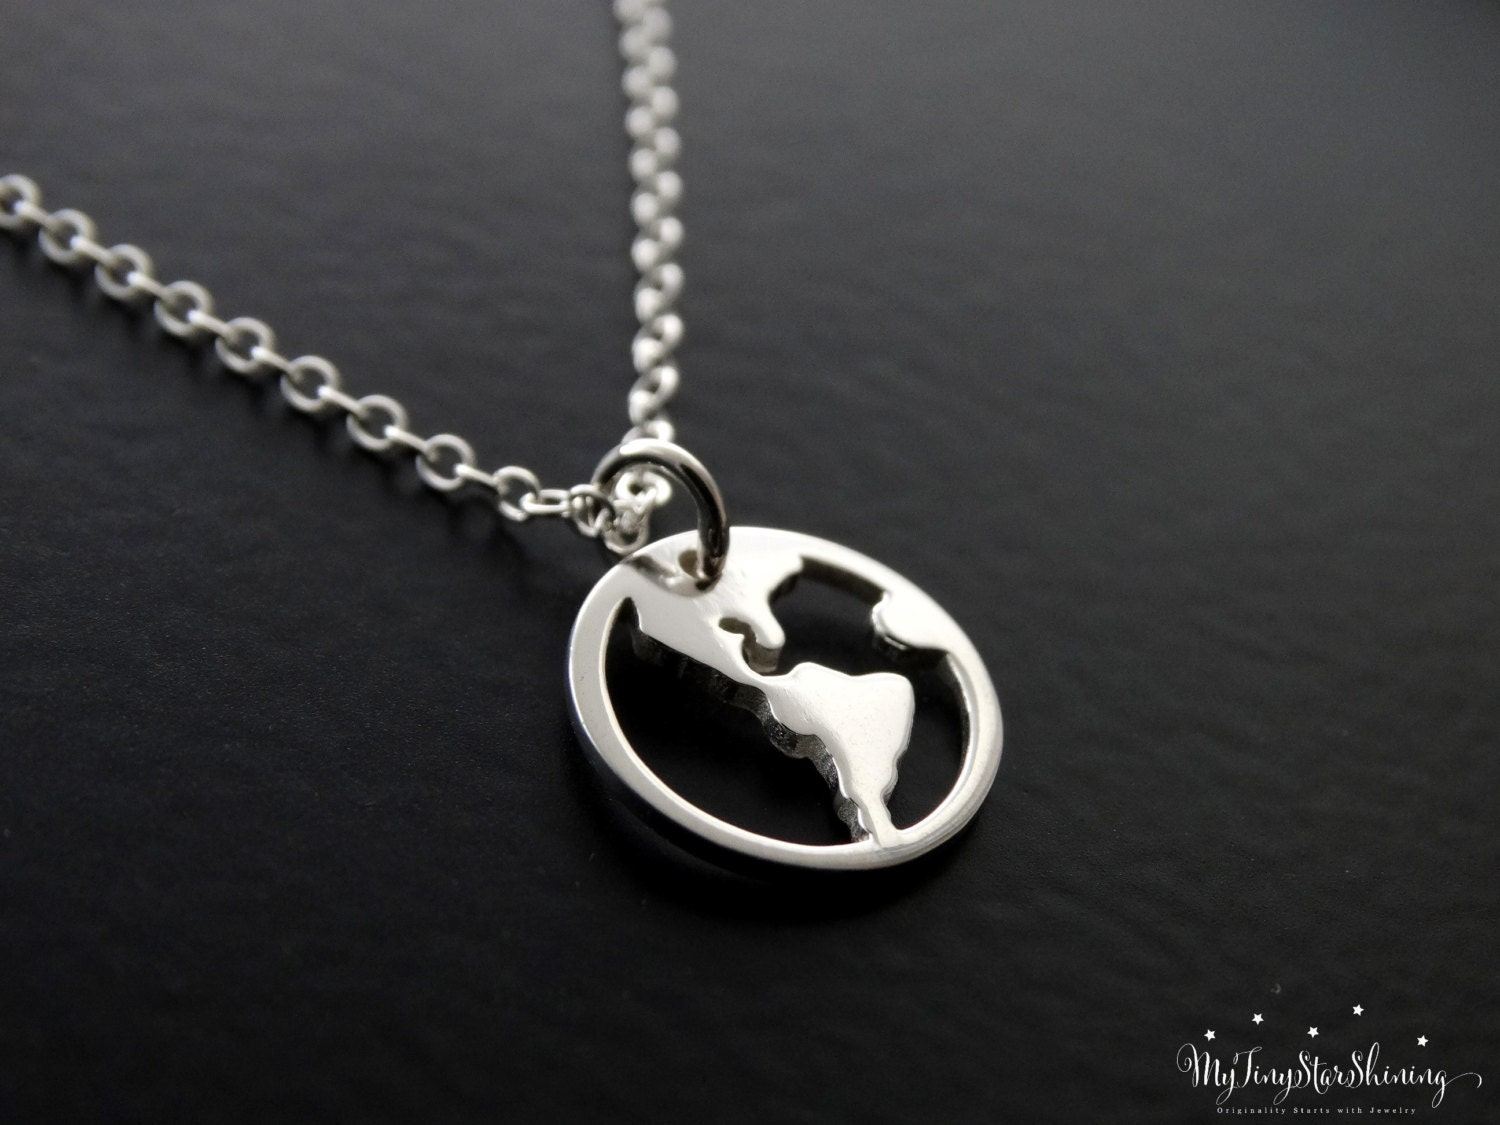 Sterling silver world map necklace travel necklace gold globe sterling silver world map necklace travel necklace gold globe pendant traveler jewelry world charm sterling silver necklace gumiabroncs Gallery